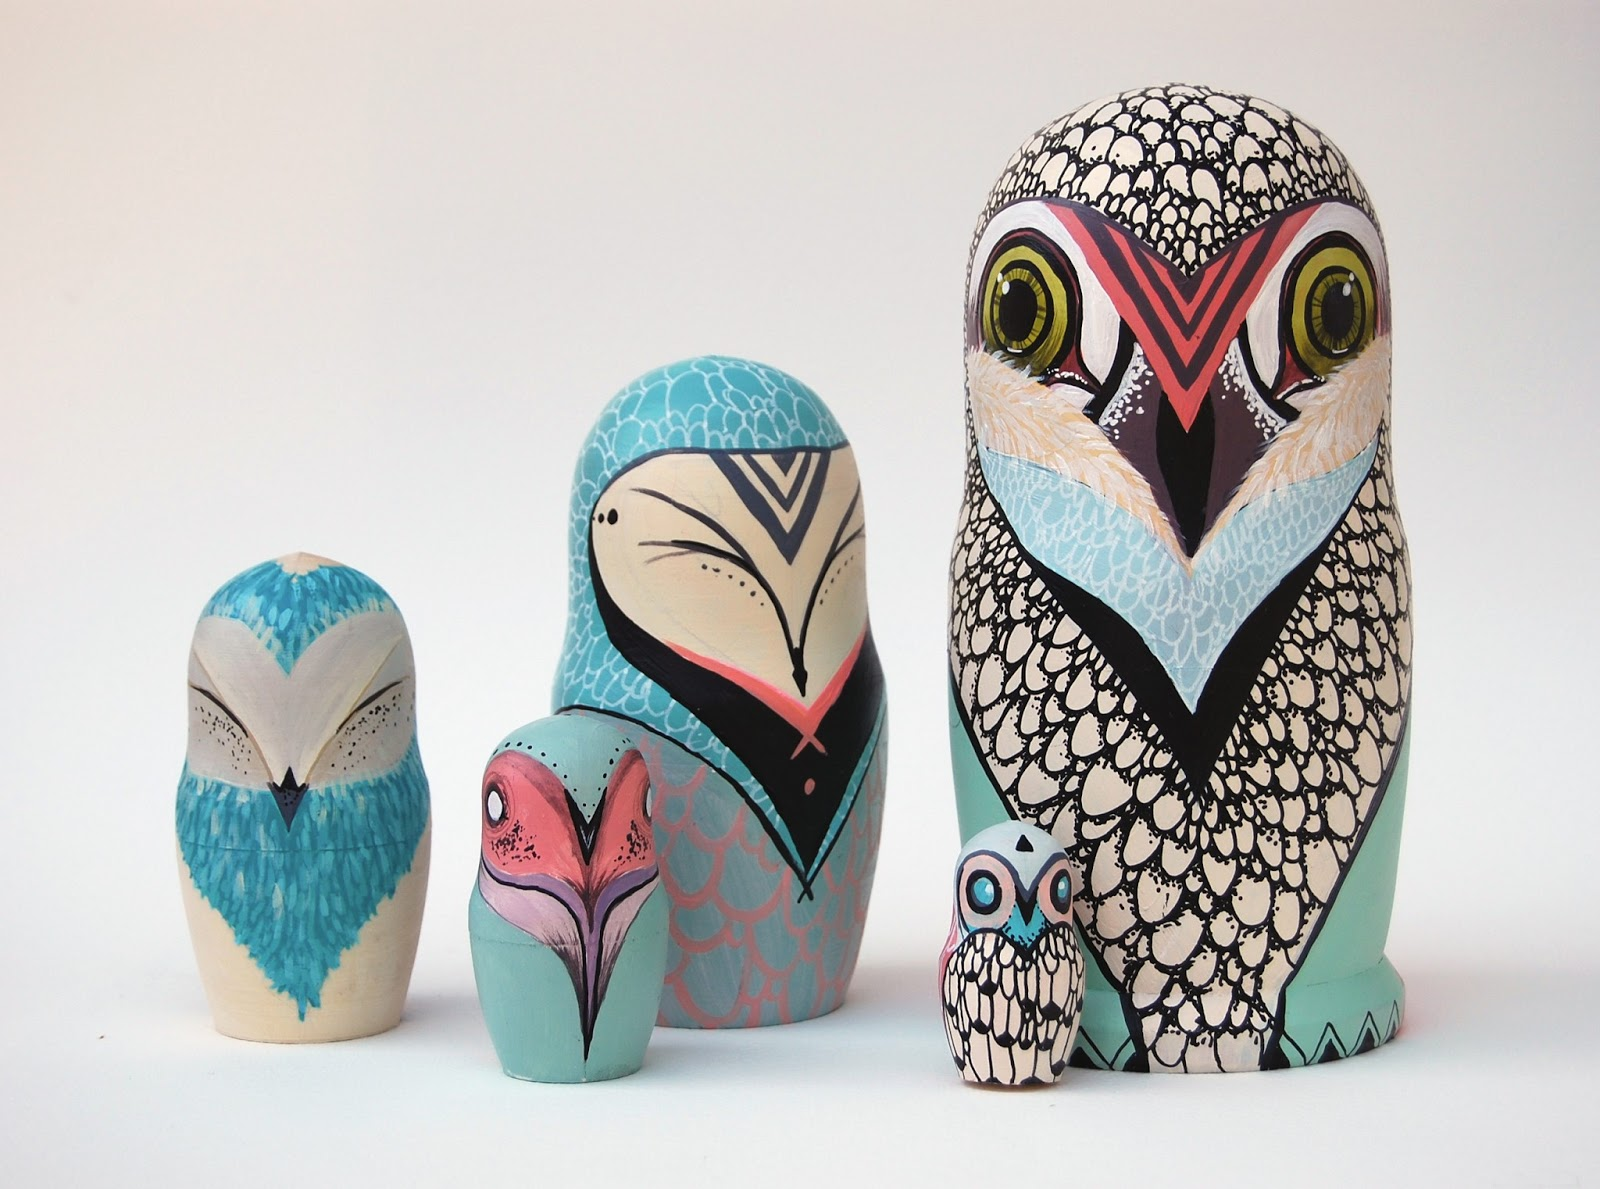 caleigh ill ustration custom stacking dolls russian owls